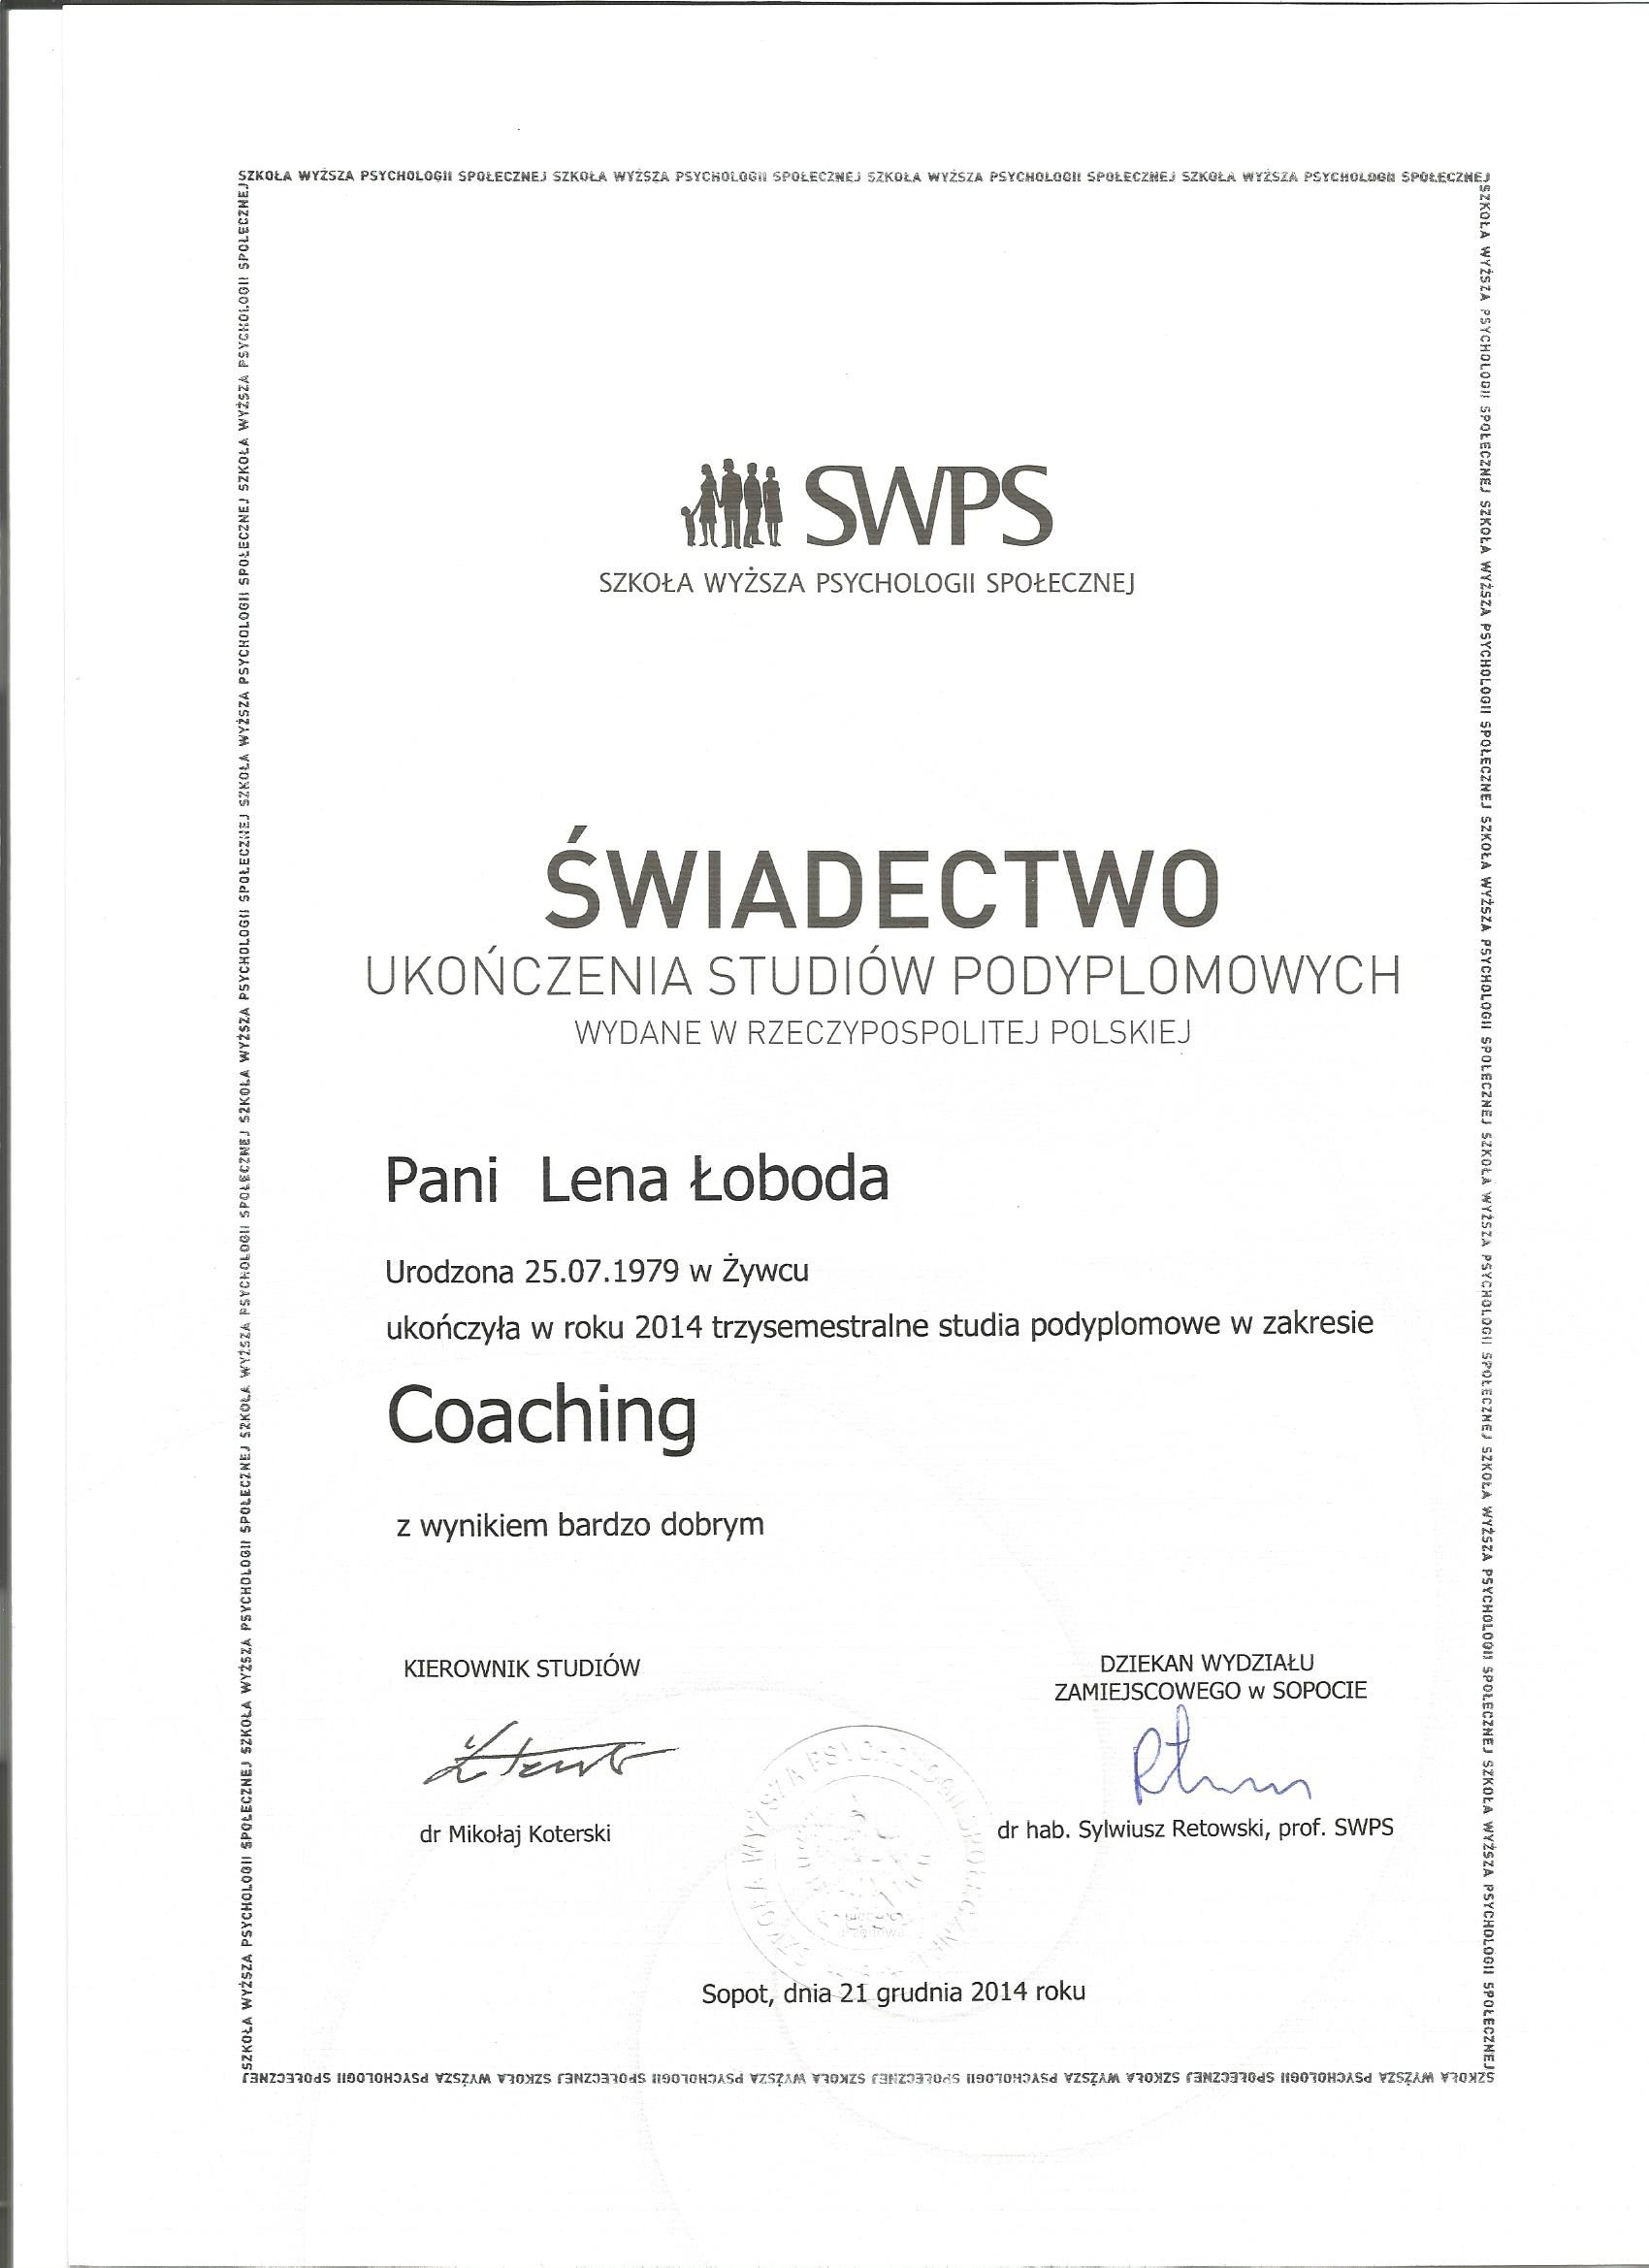 SWPS Coaching dyplom